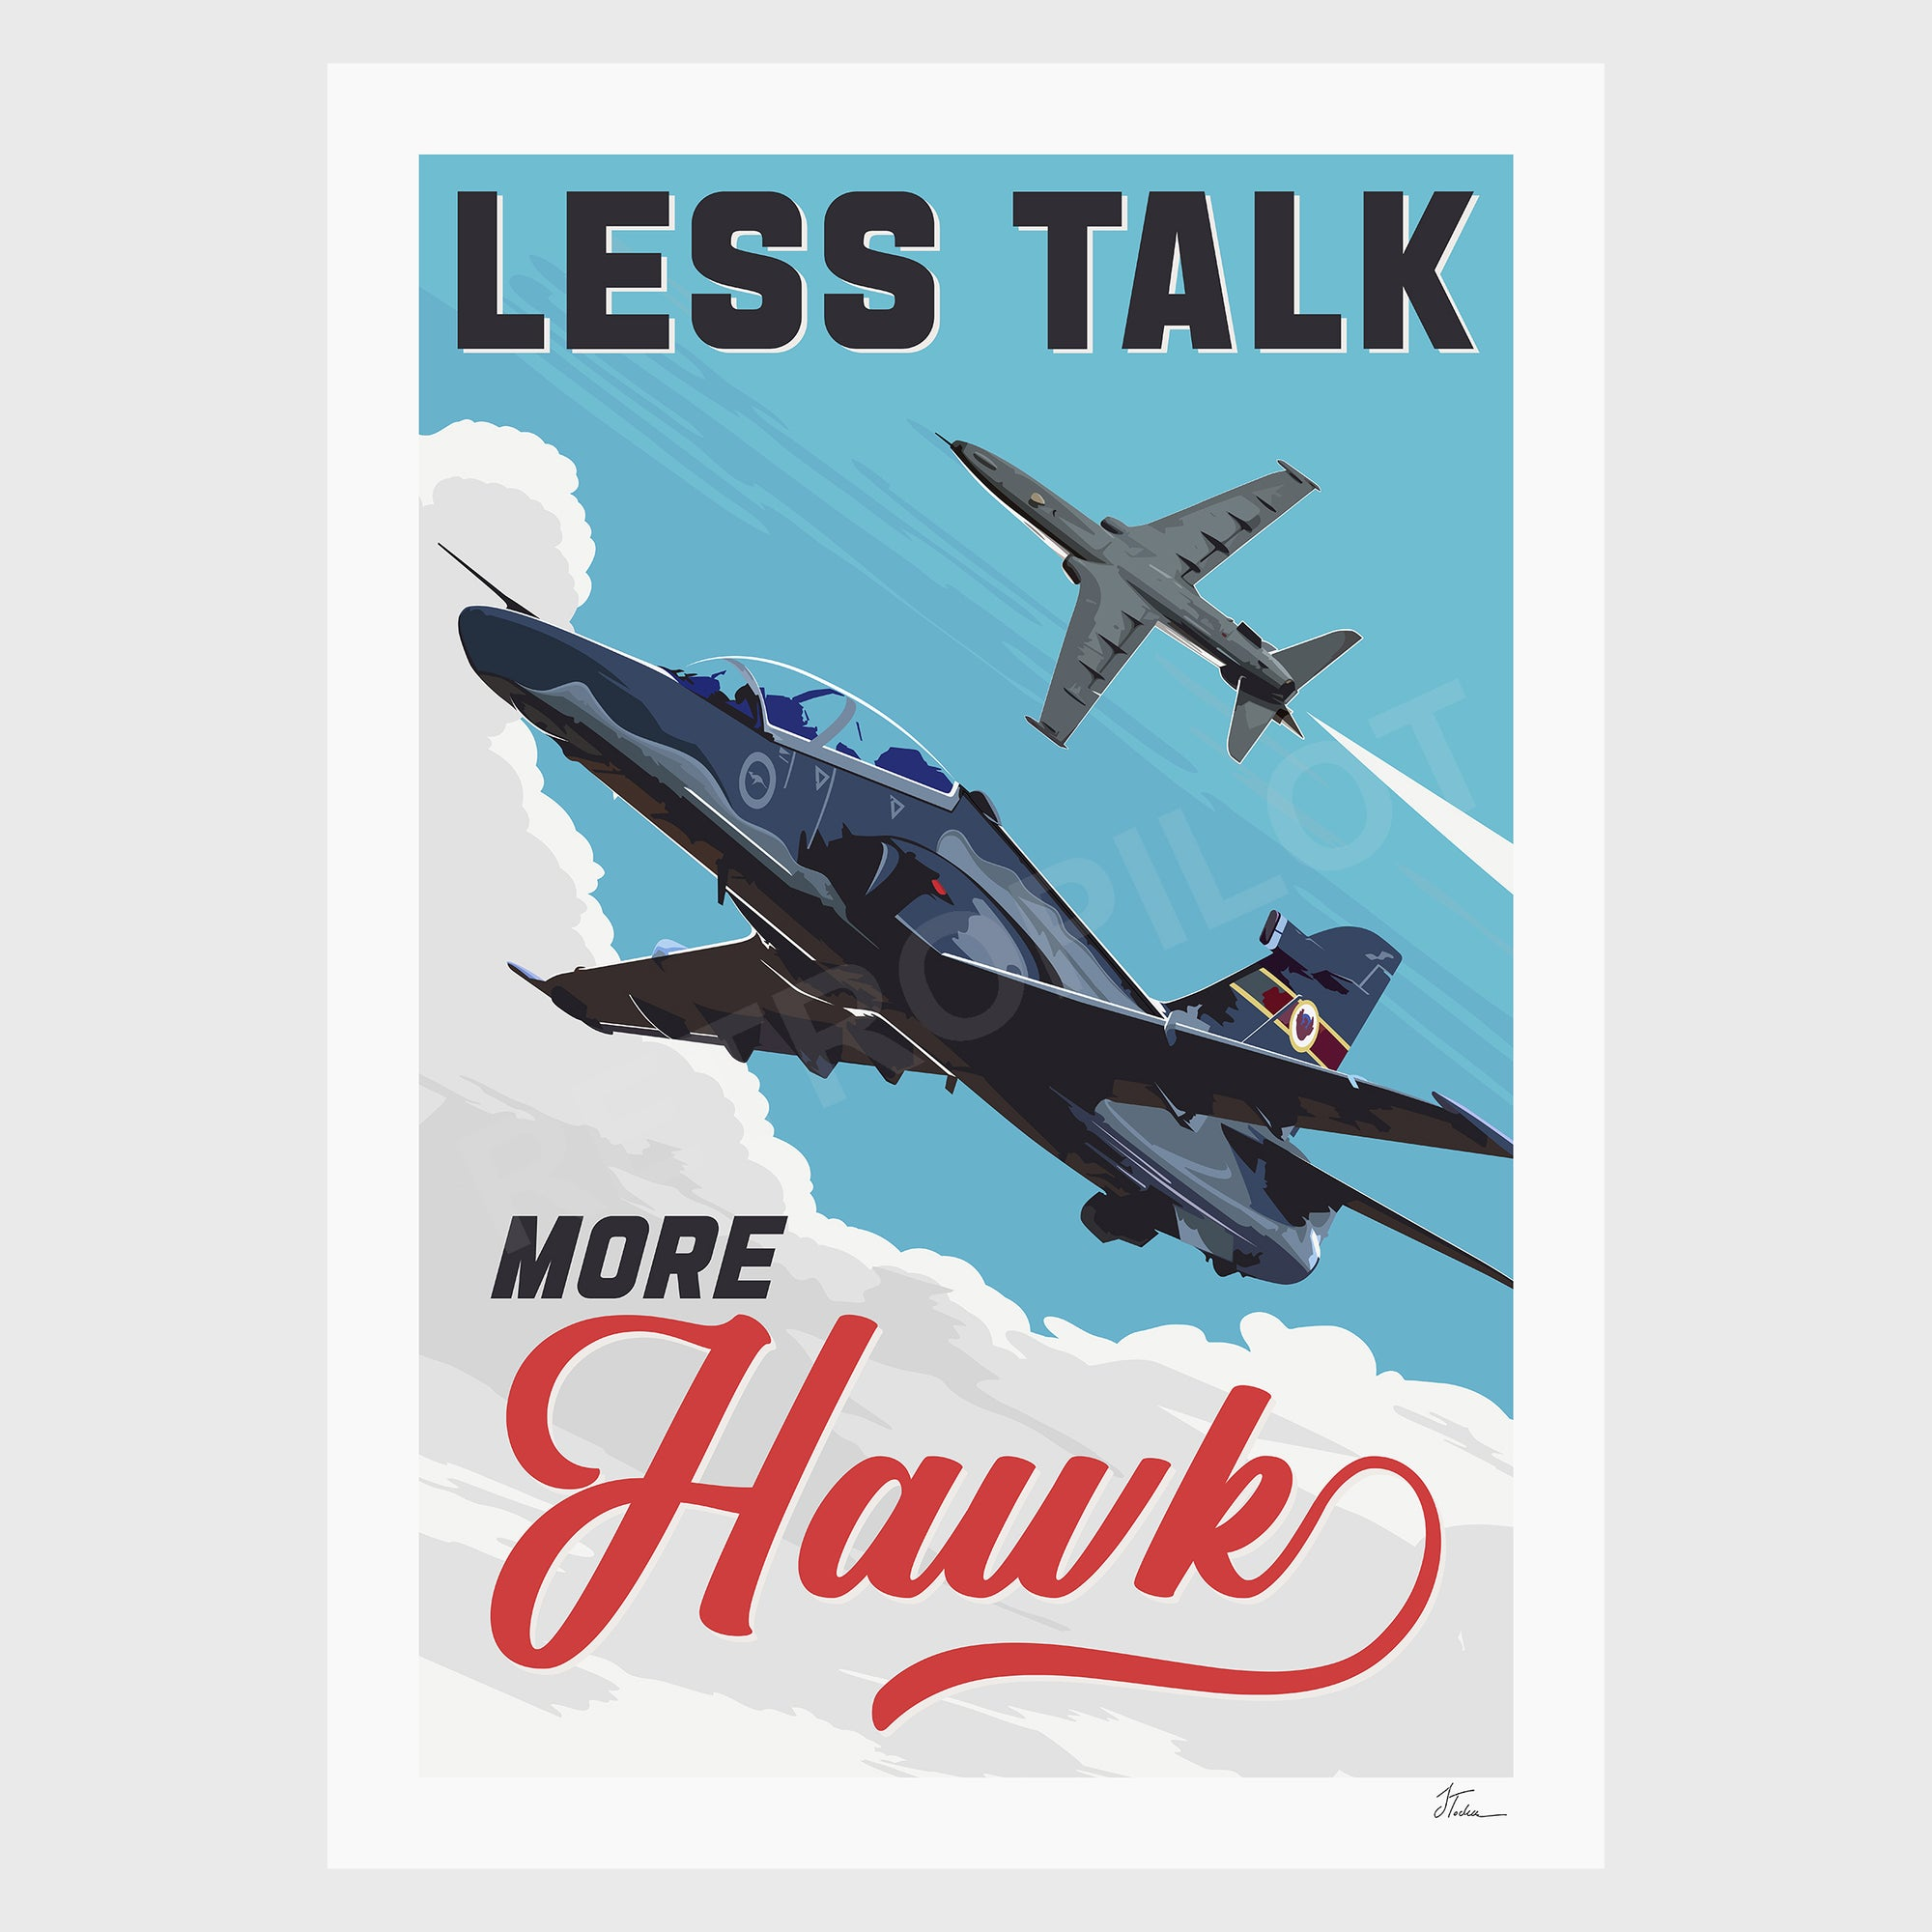 Hawk-127 - Less Talk More Hawk